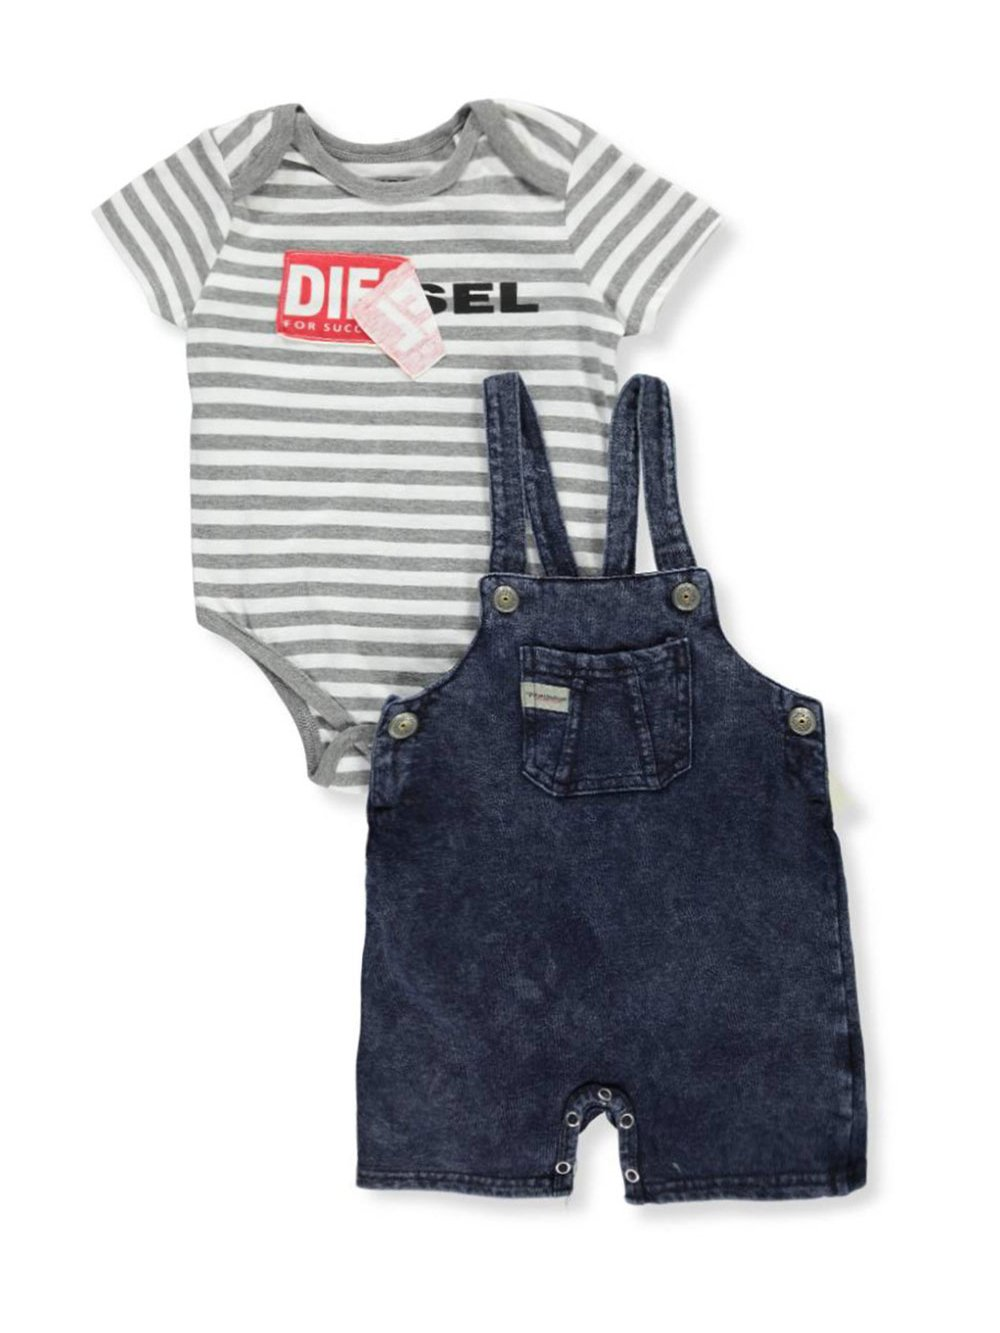 Diesel Baby Boys' 2-Piece Outfit - Navy/White, 12 Months